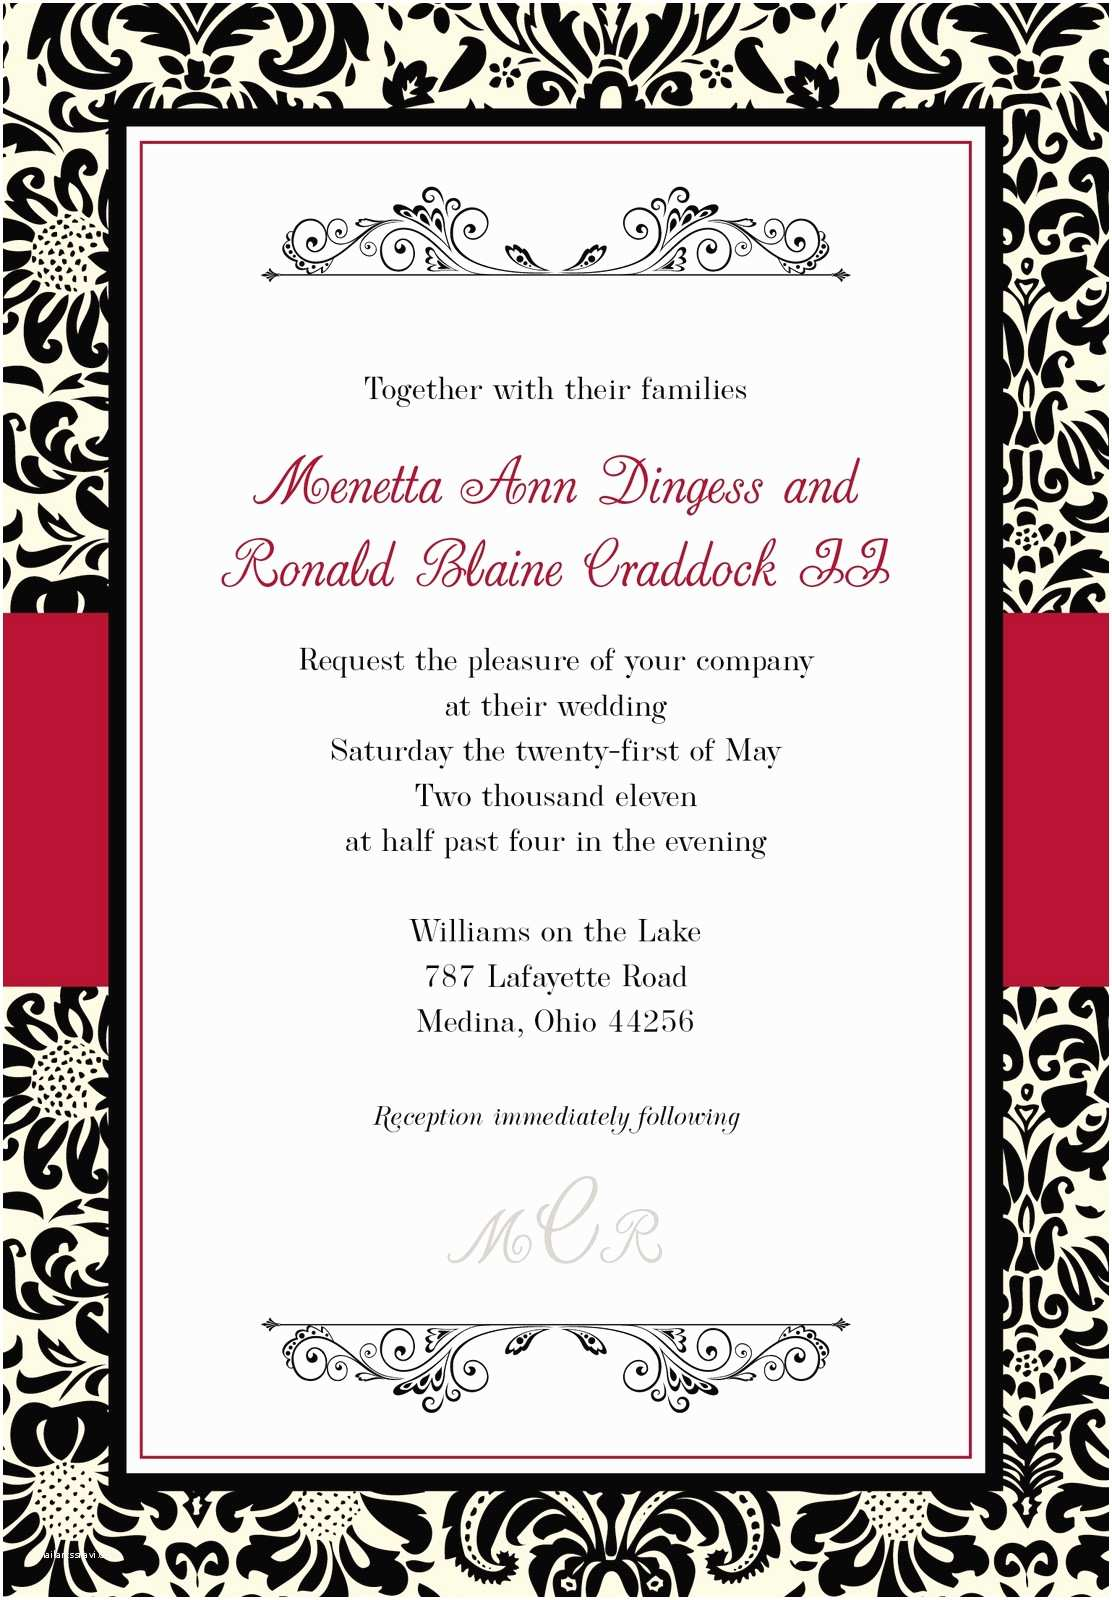 Red White and Silver Wedding Invitations Black and Red Wedding Invitations Template